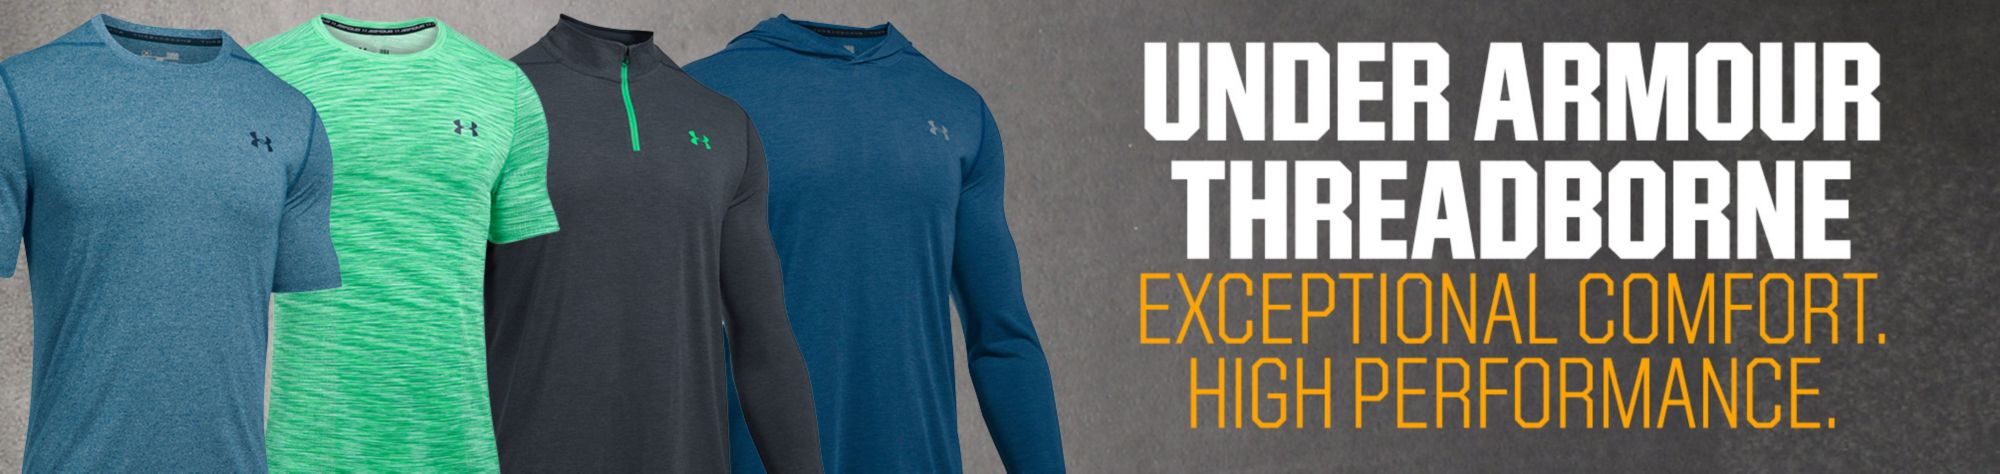 Men's Under Armour Threadborne